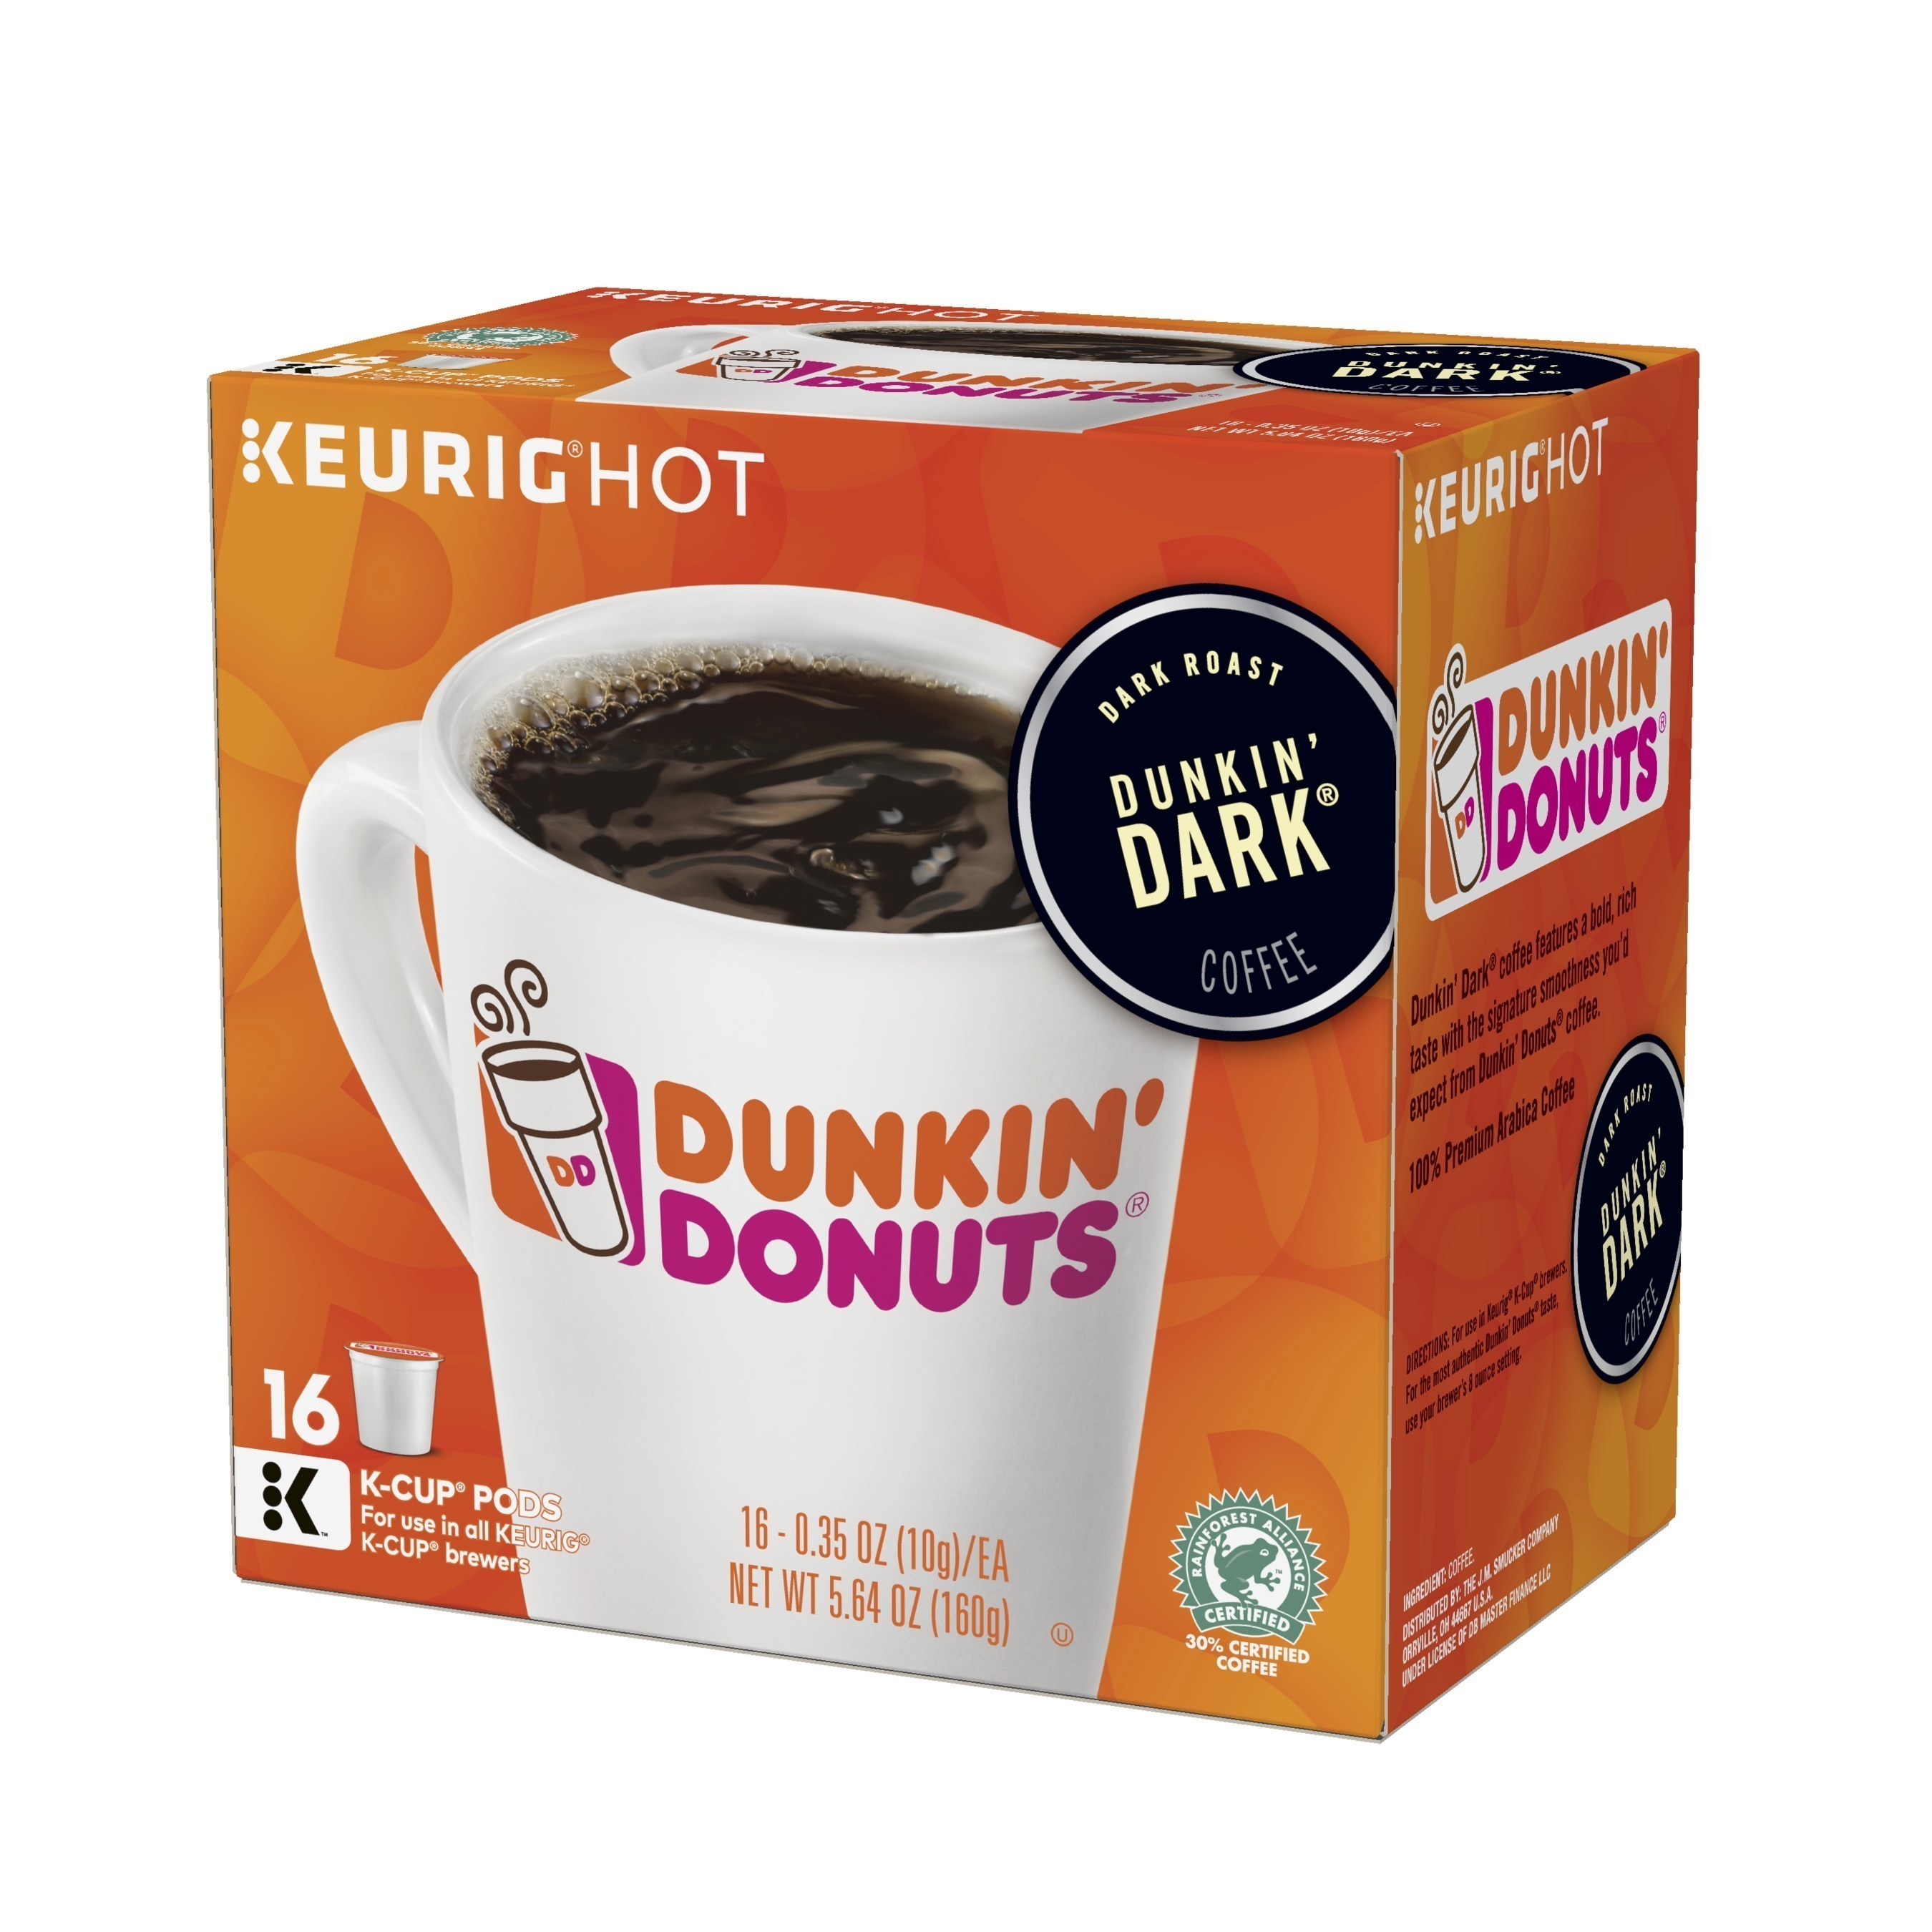 Dunkin' Dark K-Cup(R) pods, available at groceries stores nationwide.